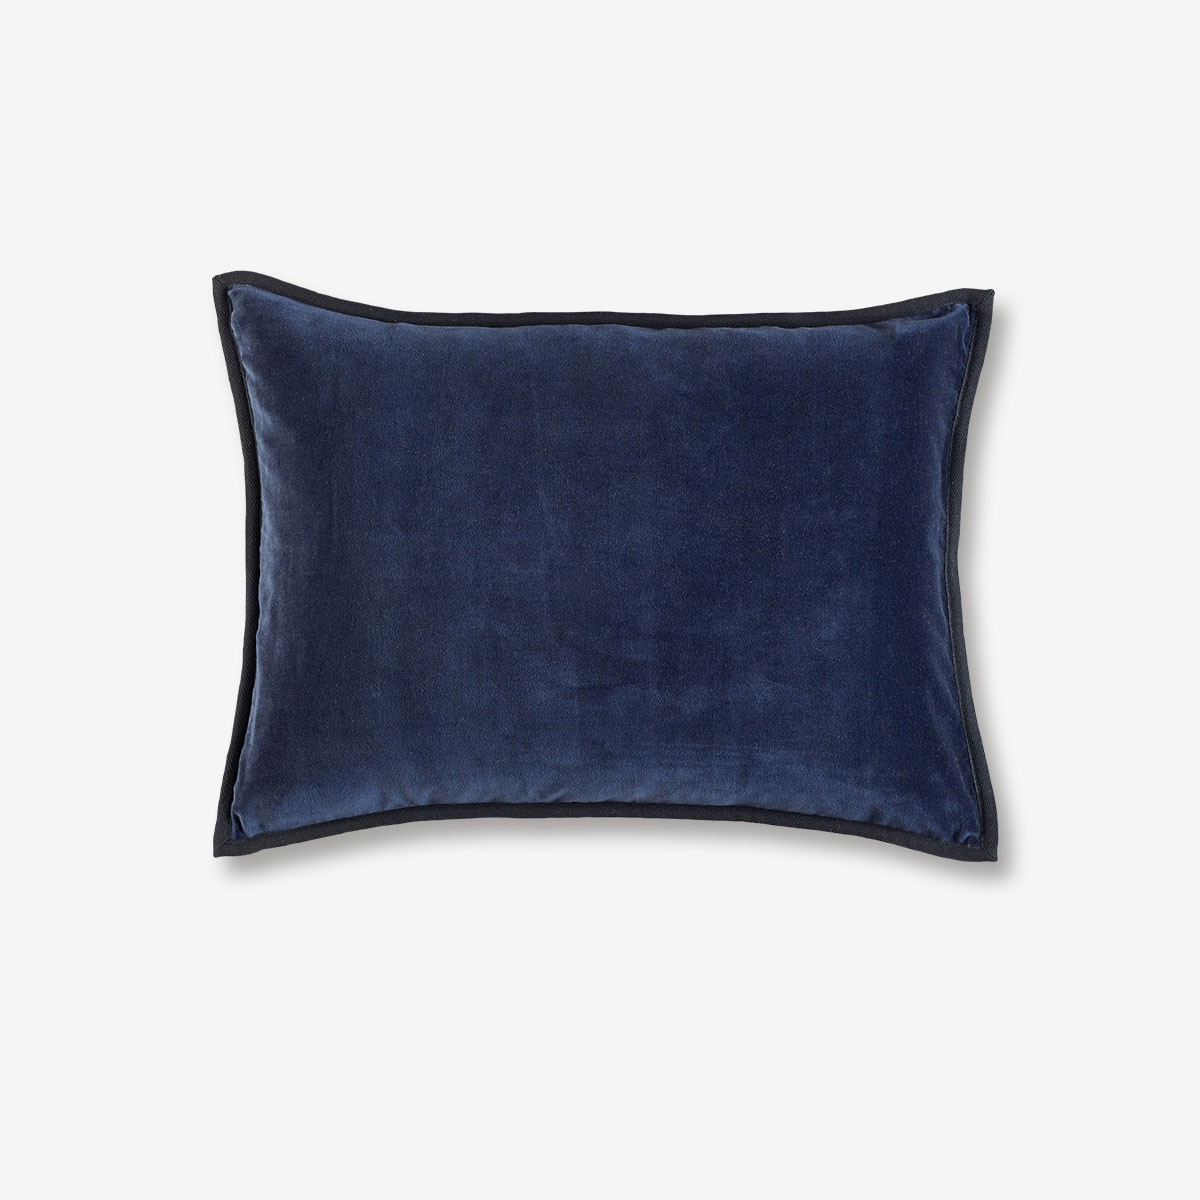 Image shows Orphee Cushion in Winter Blue